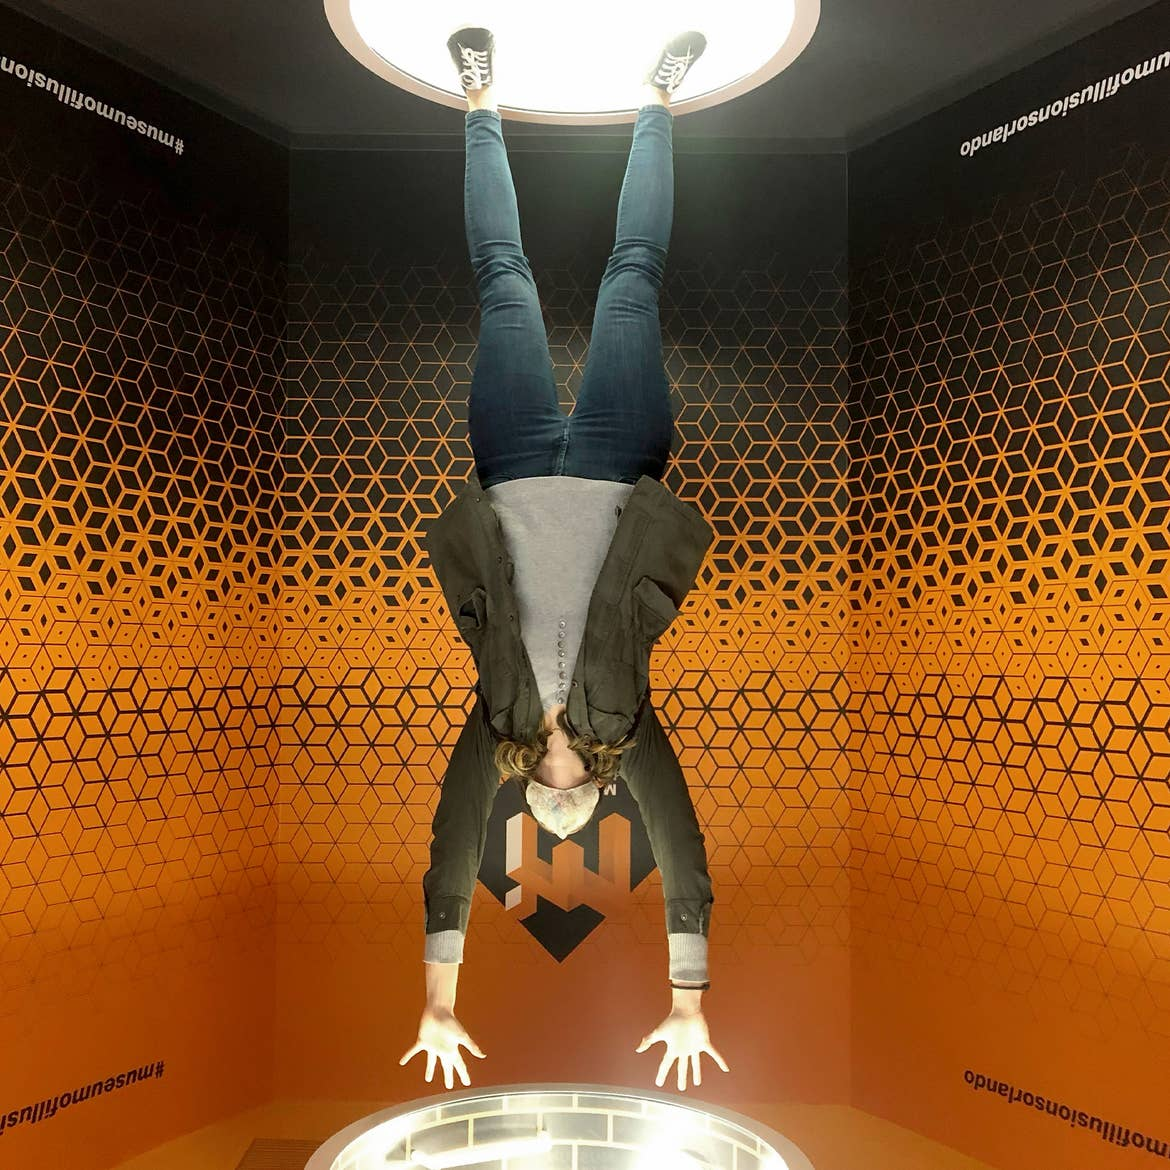 A woman doing what appears to be a handstand at Museum of Illusions at ICON park.